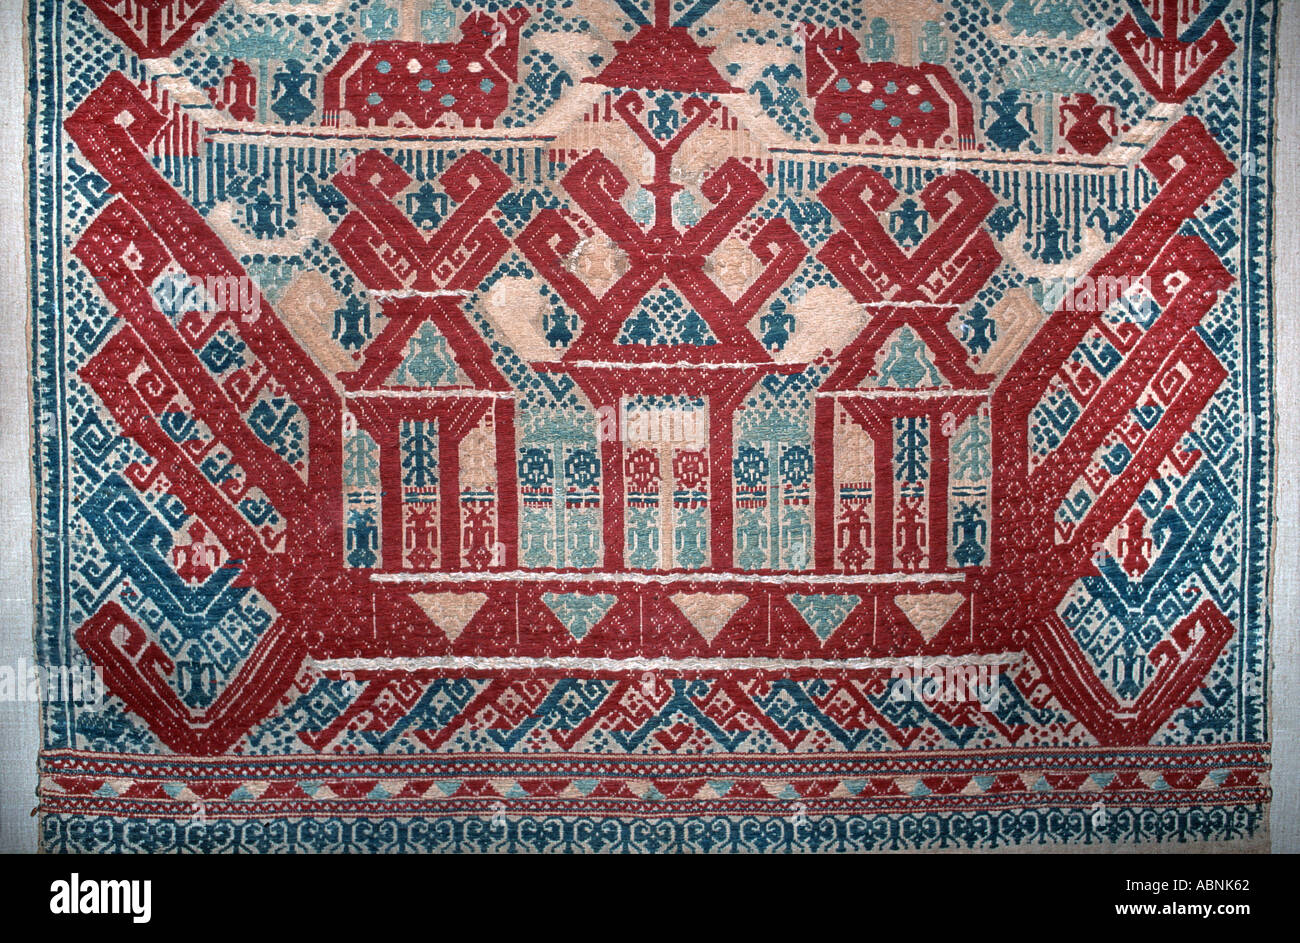 Detail of a Sumatran Ship Cloth also known as a Palepai Brocaded textile with a ceremonial function Lampung Sumatra - Stock Image